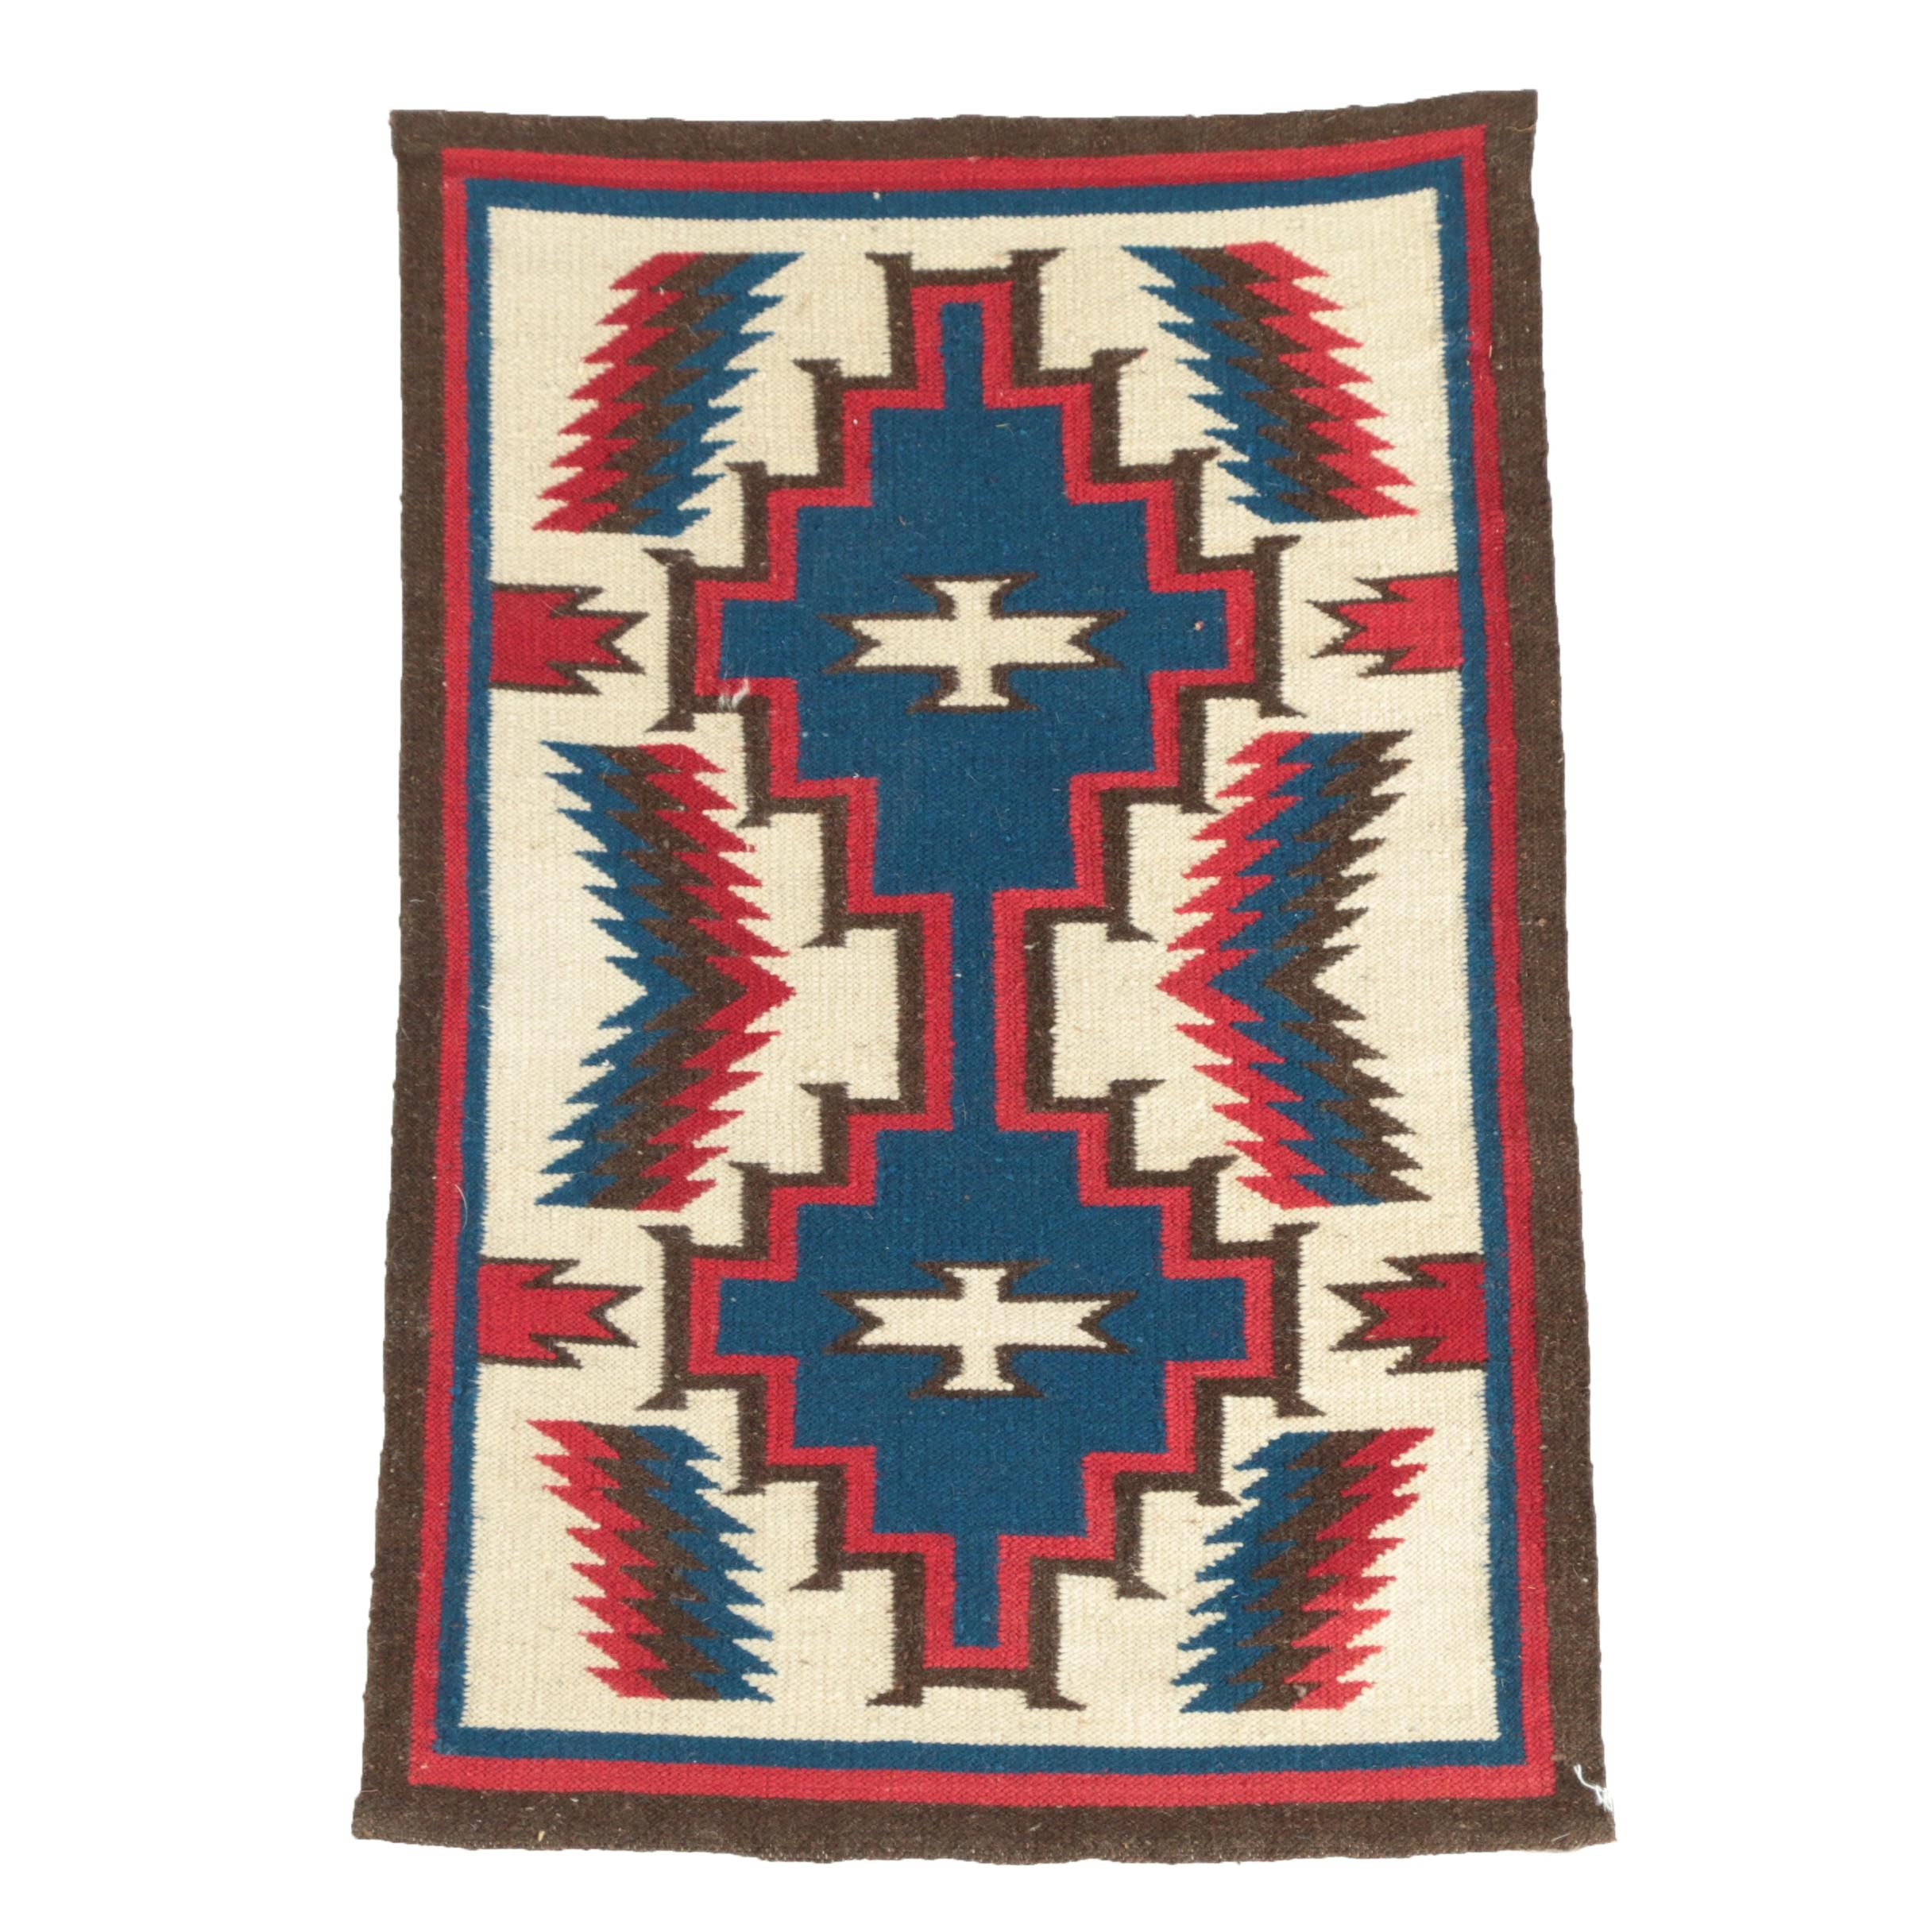 Handwoven Native American Style Wool Rug